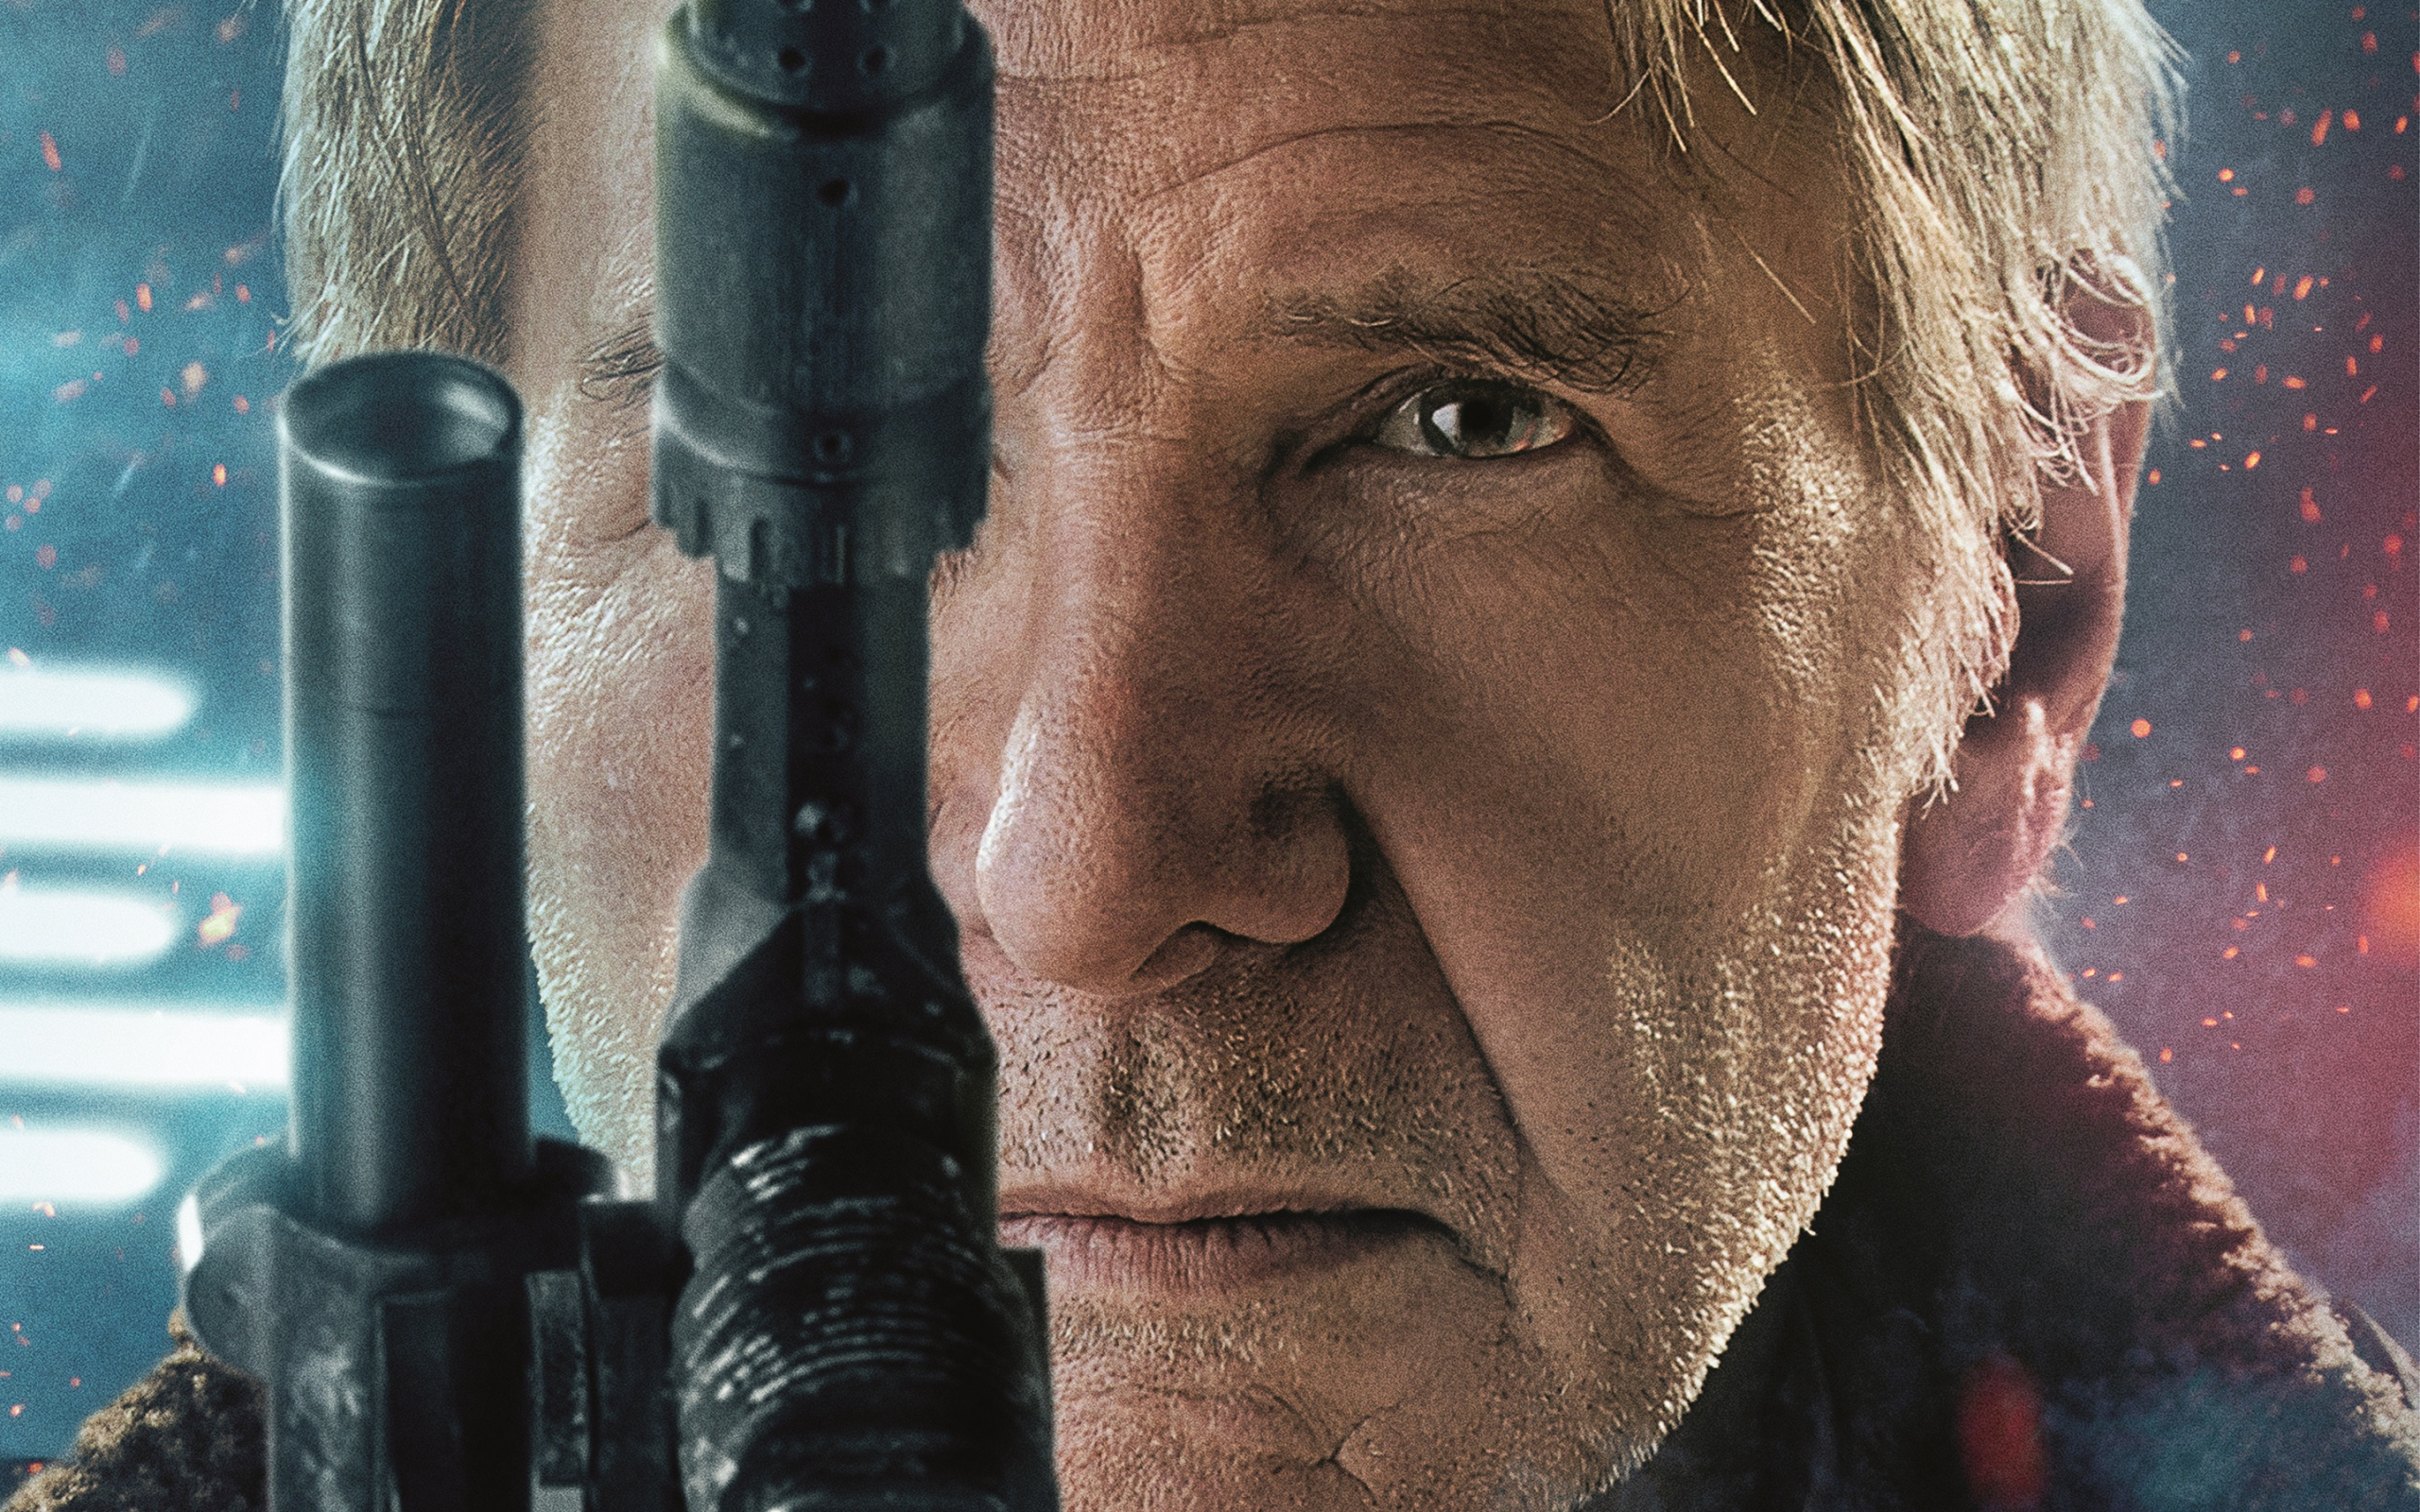 harrison ford han solo wallpapers in jpg format for free download